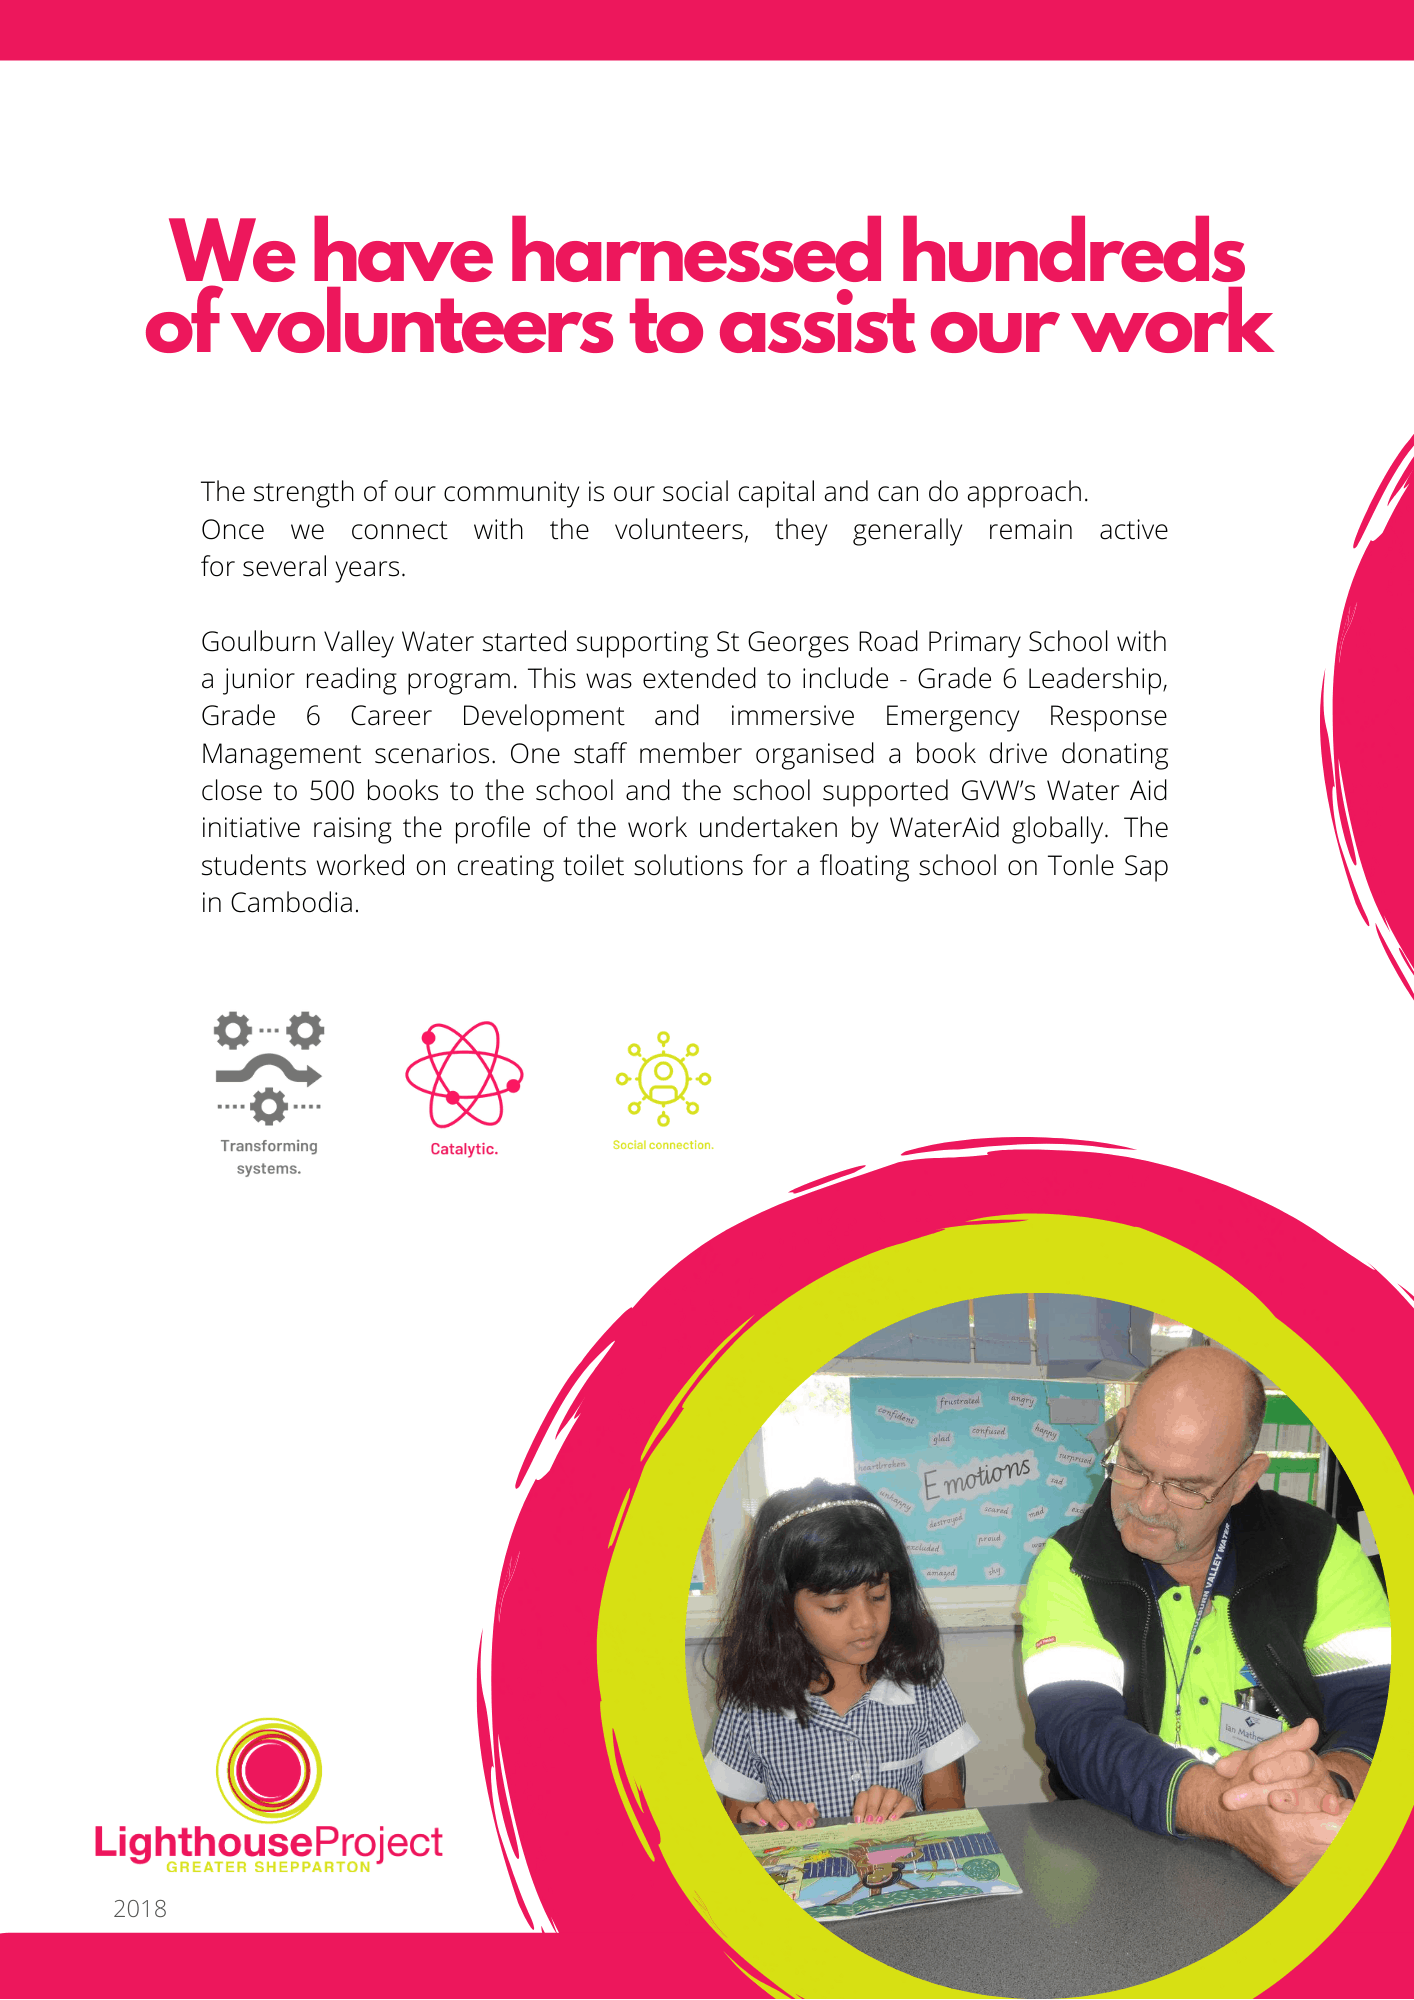 Hundreds of volunteers to assist our work image